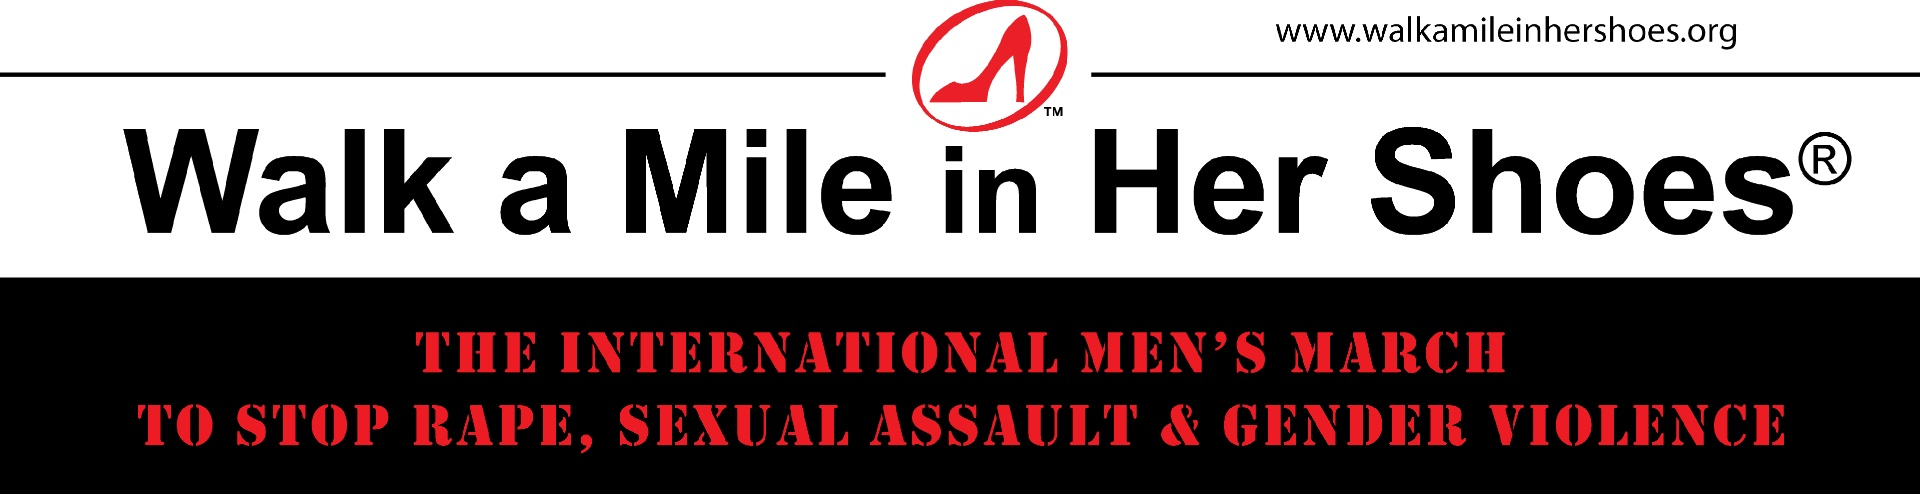 Walk a Mile in Her Shoes event scheduled Oct. 21